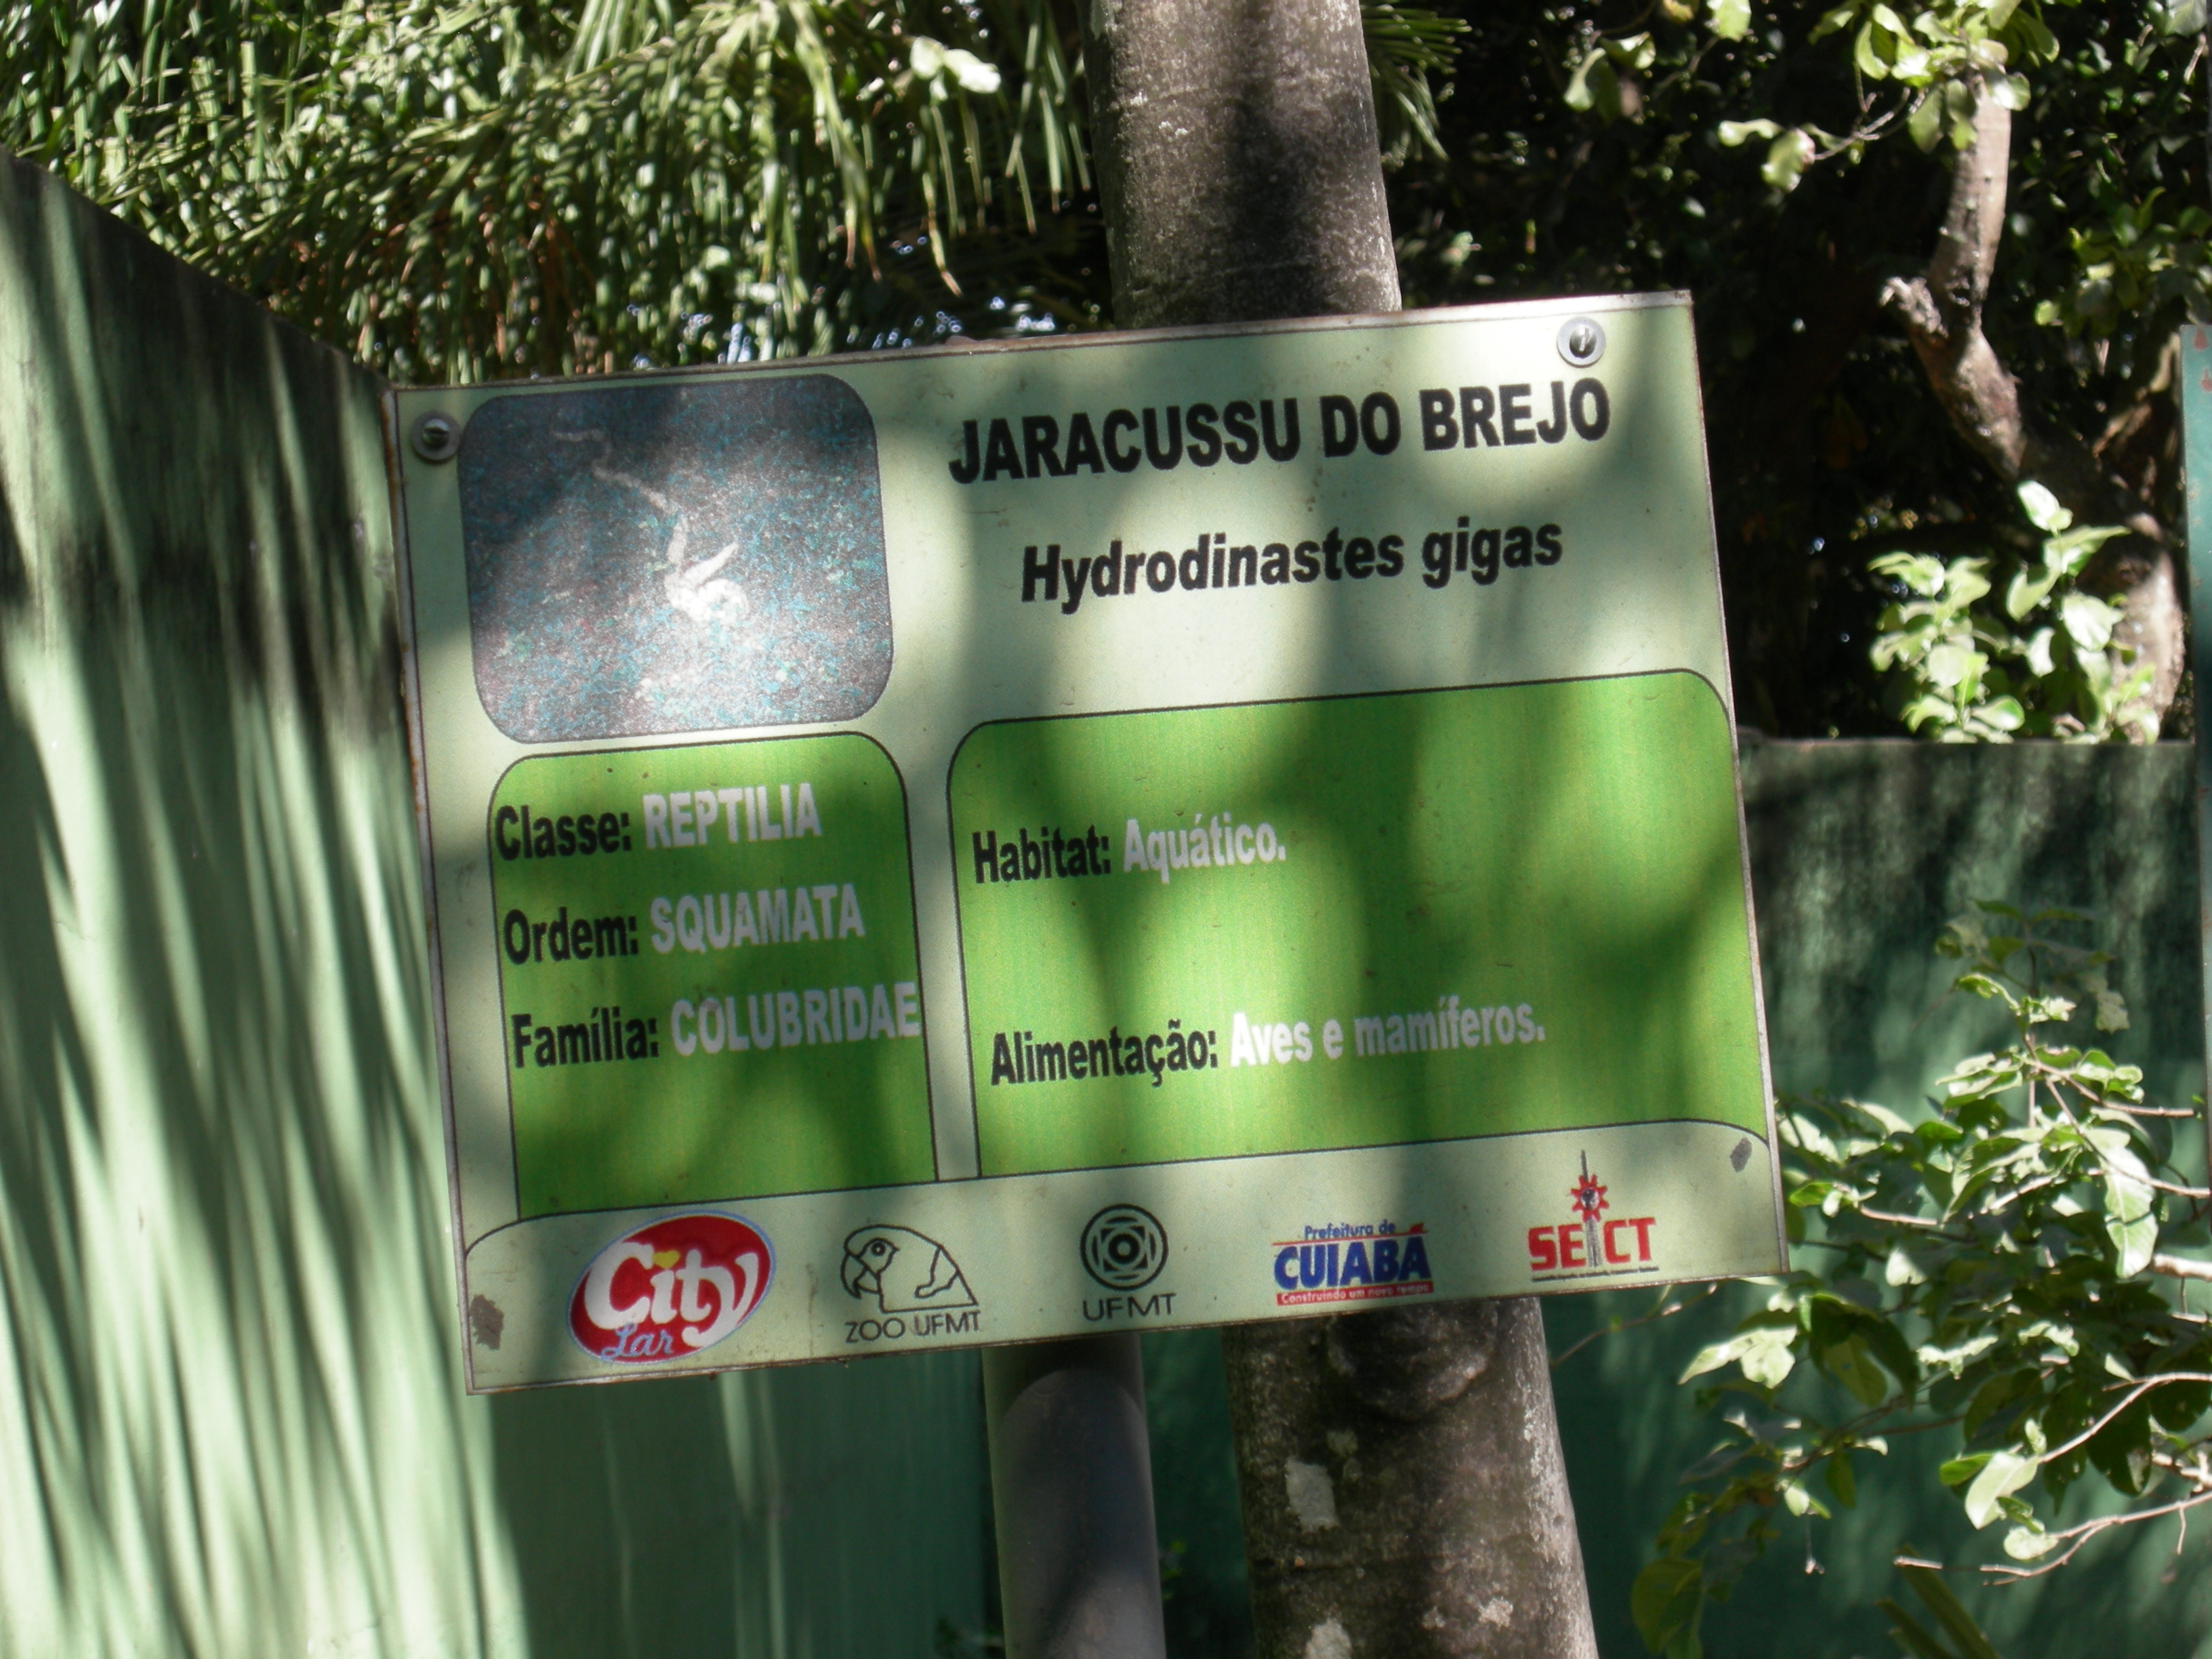 Jaracussu do Brejo (Hydrodinastes gigas) sign